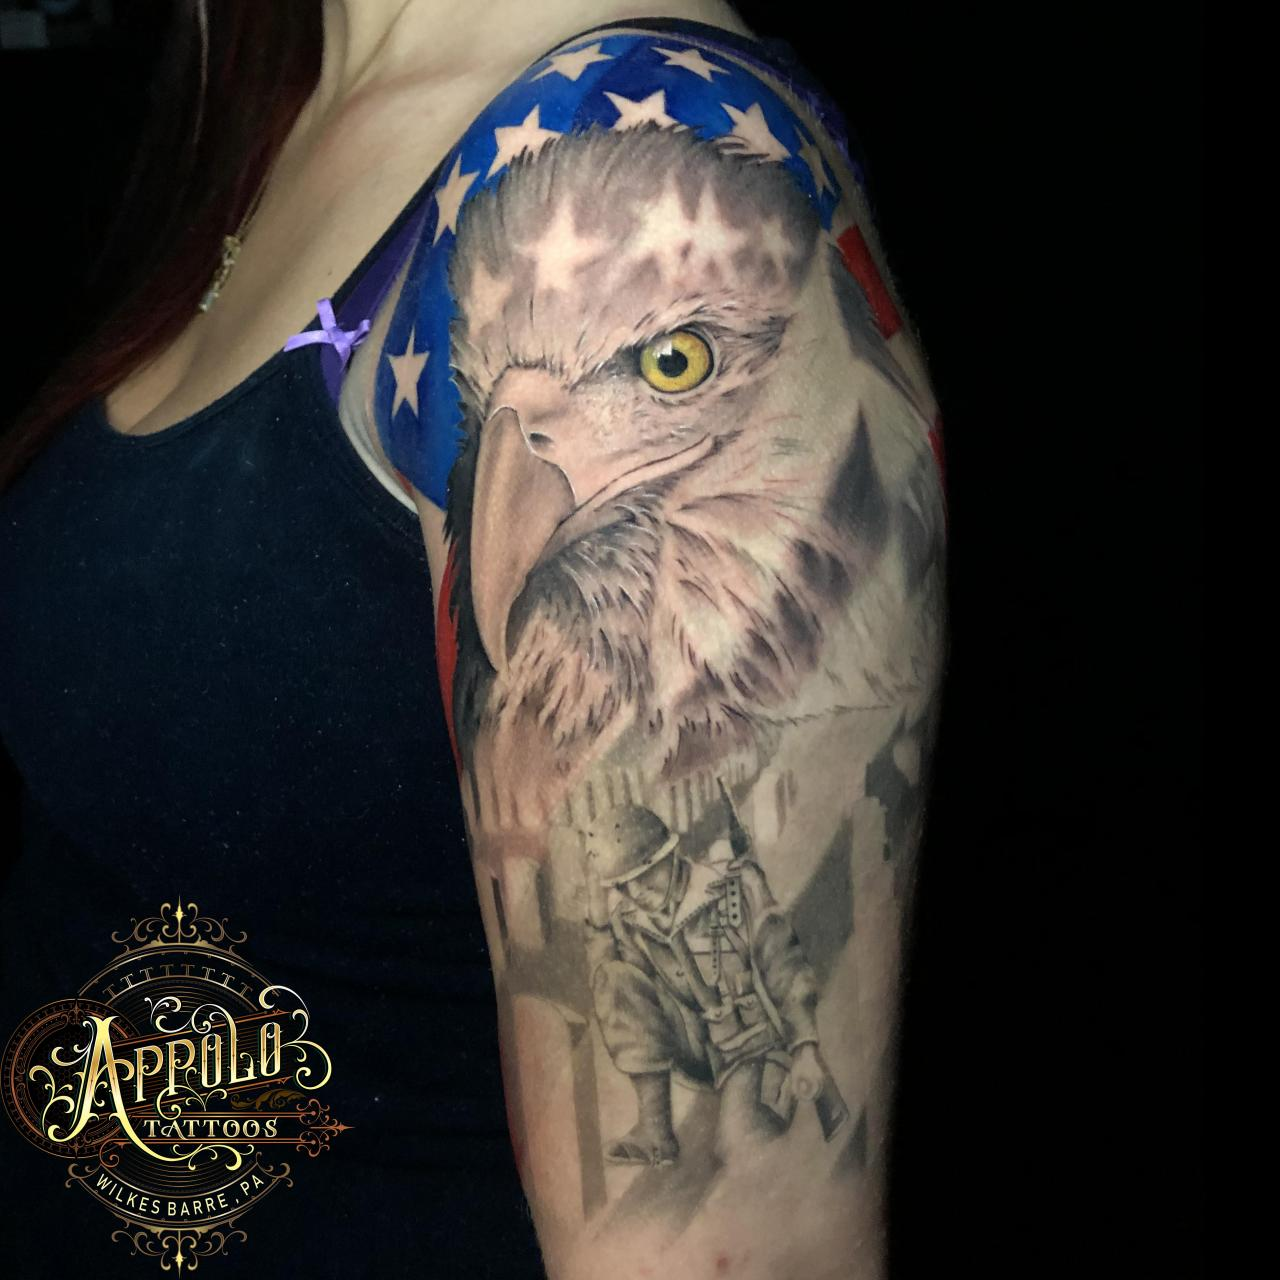 Murica' Tattoo by Appolo out of Wilkes Barre, PA! Top Fresh Bottom 6 months Healed!